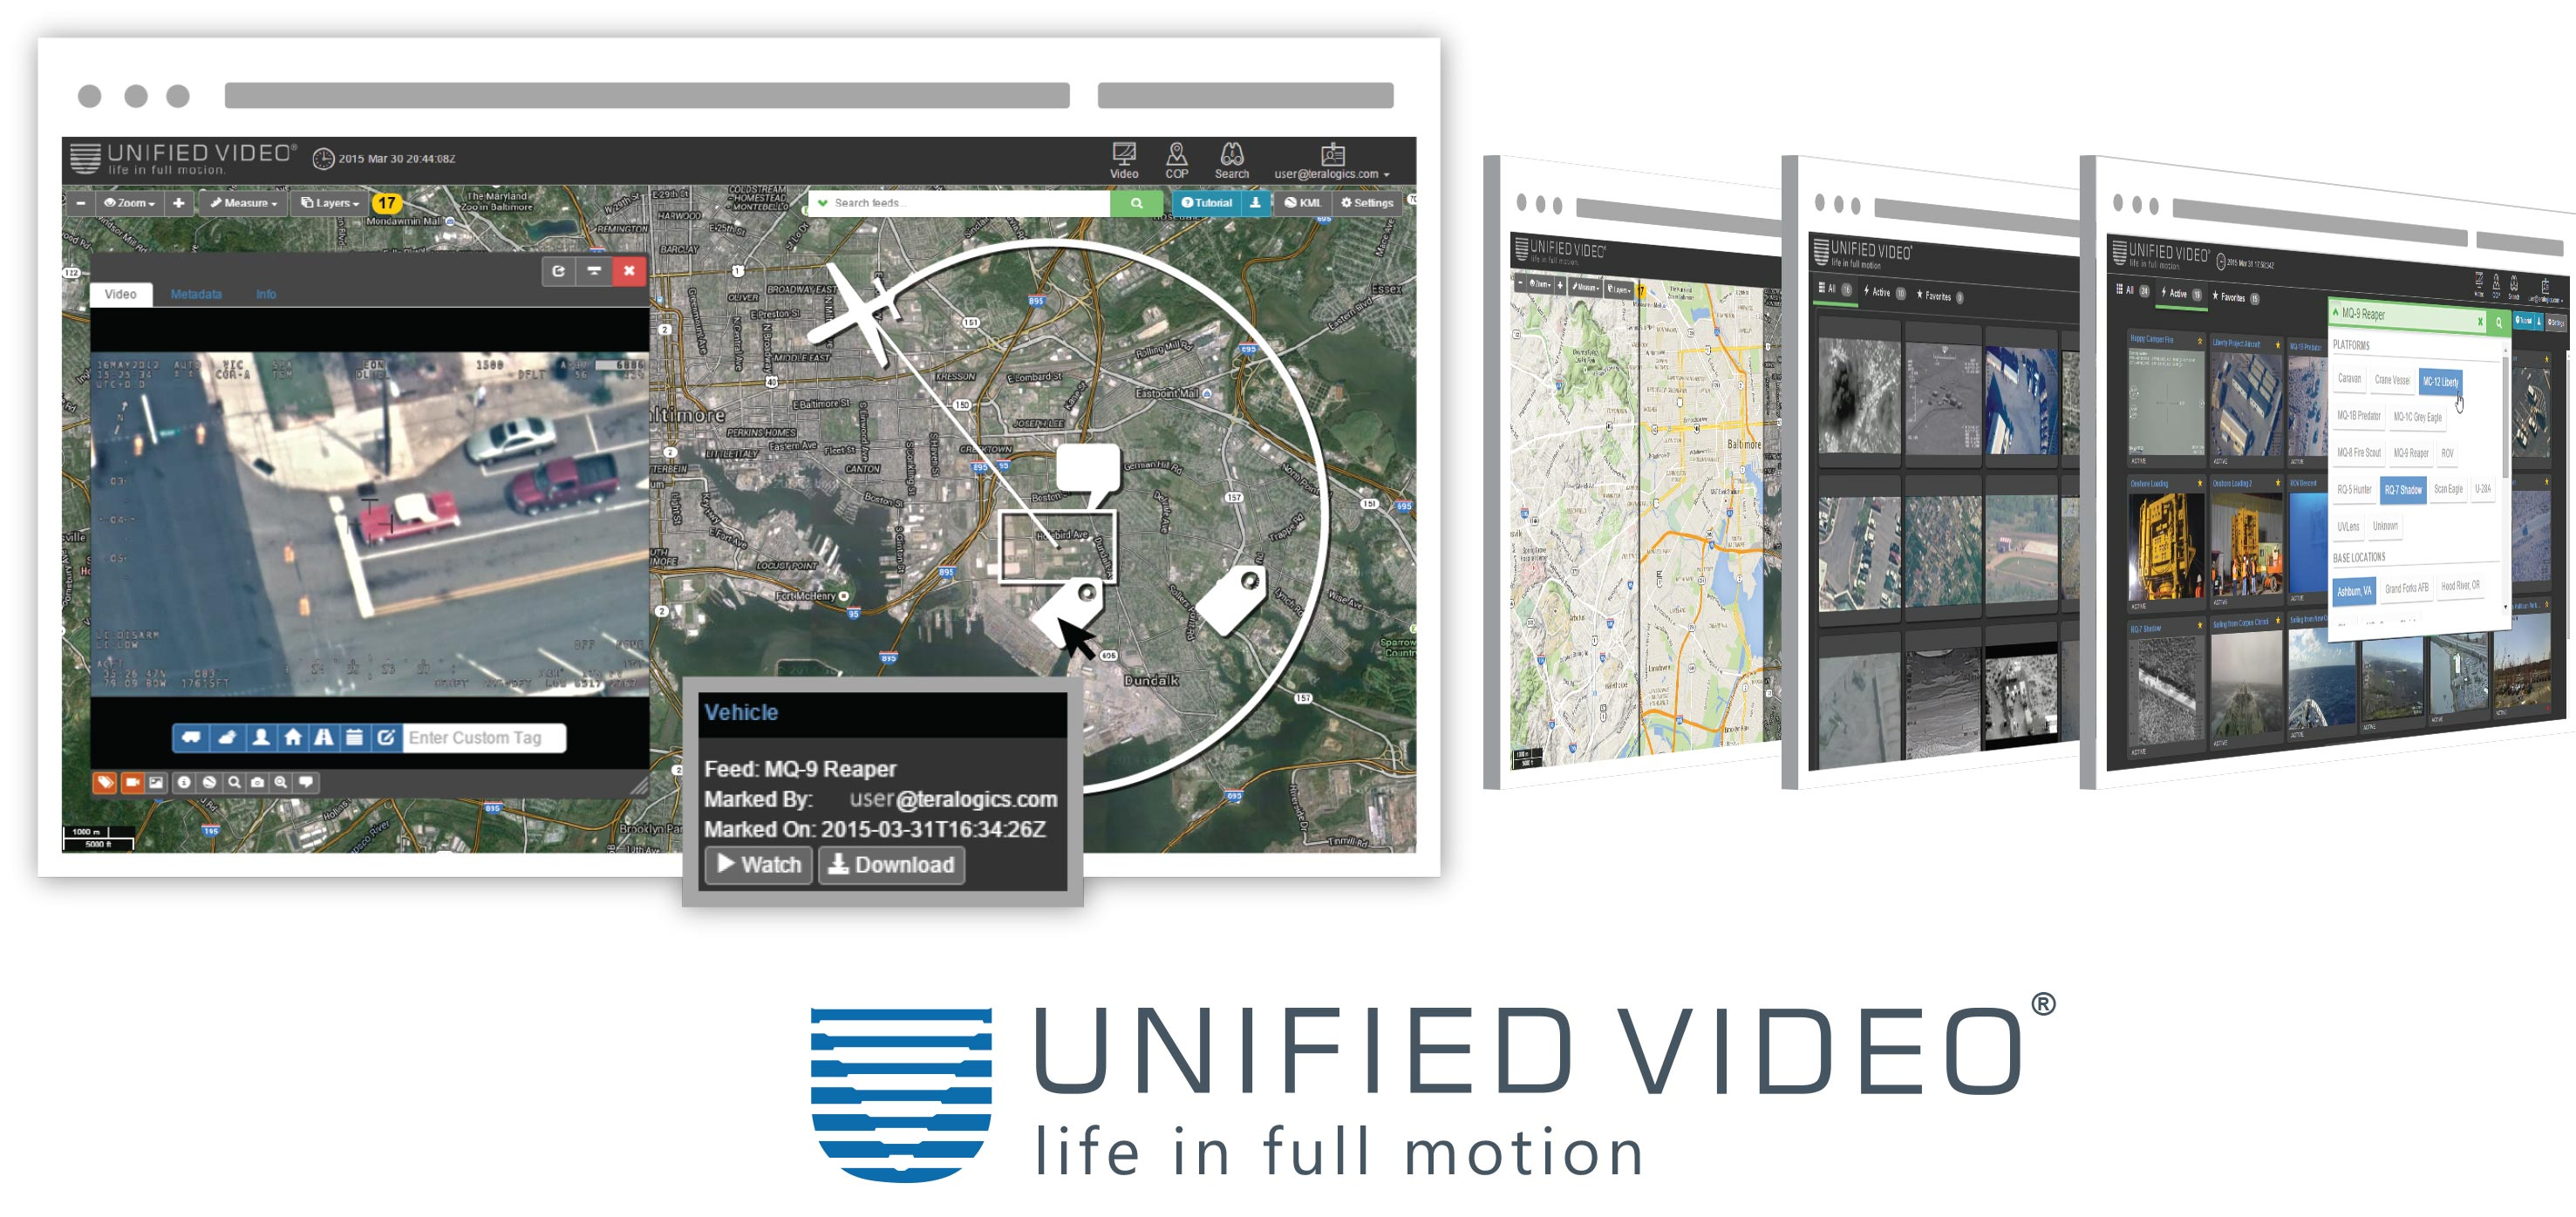 browser images of Unified Video streaming management framework in use